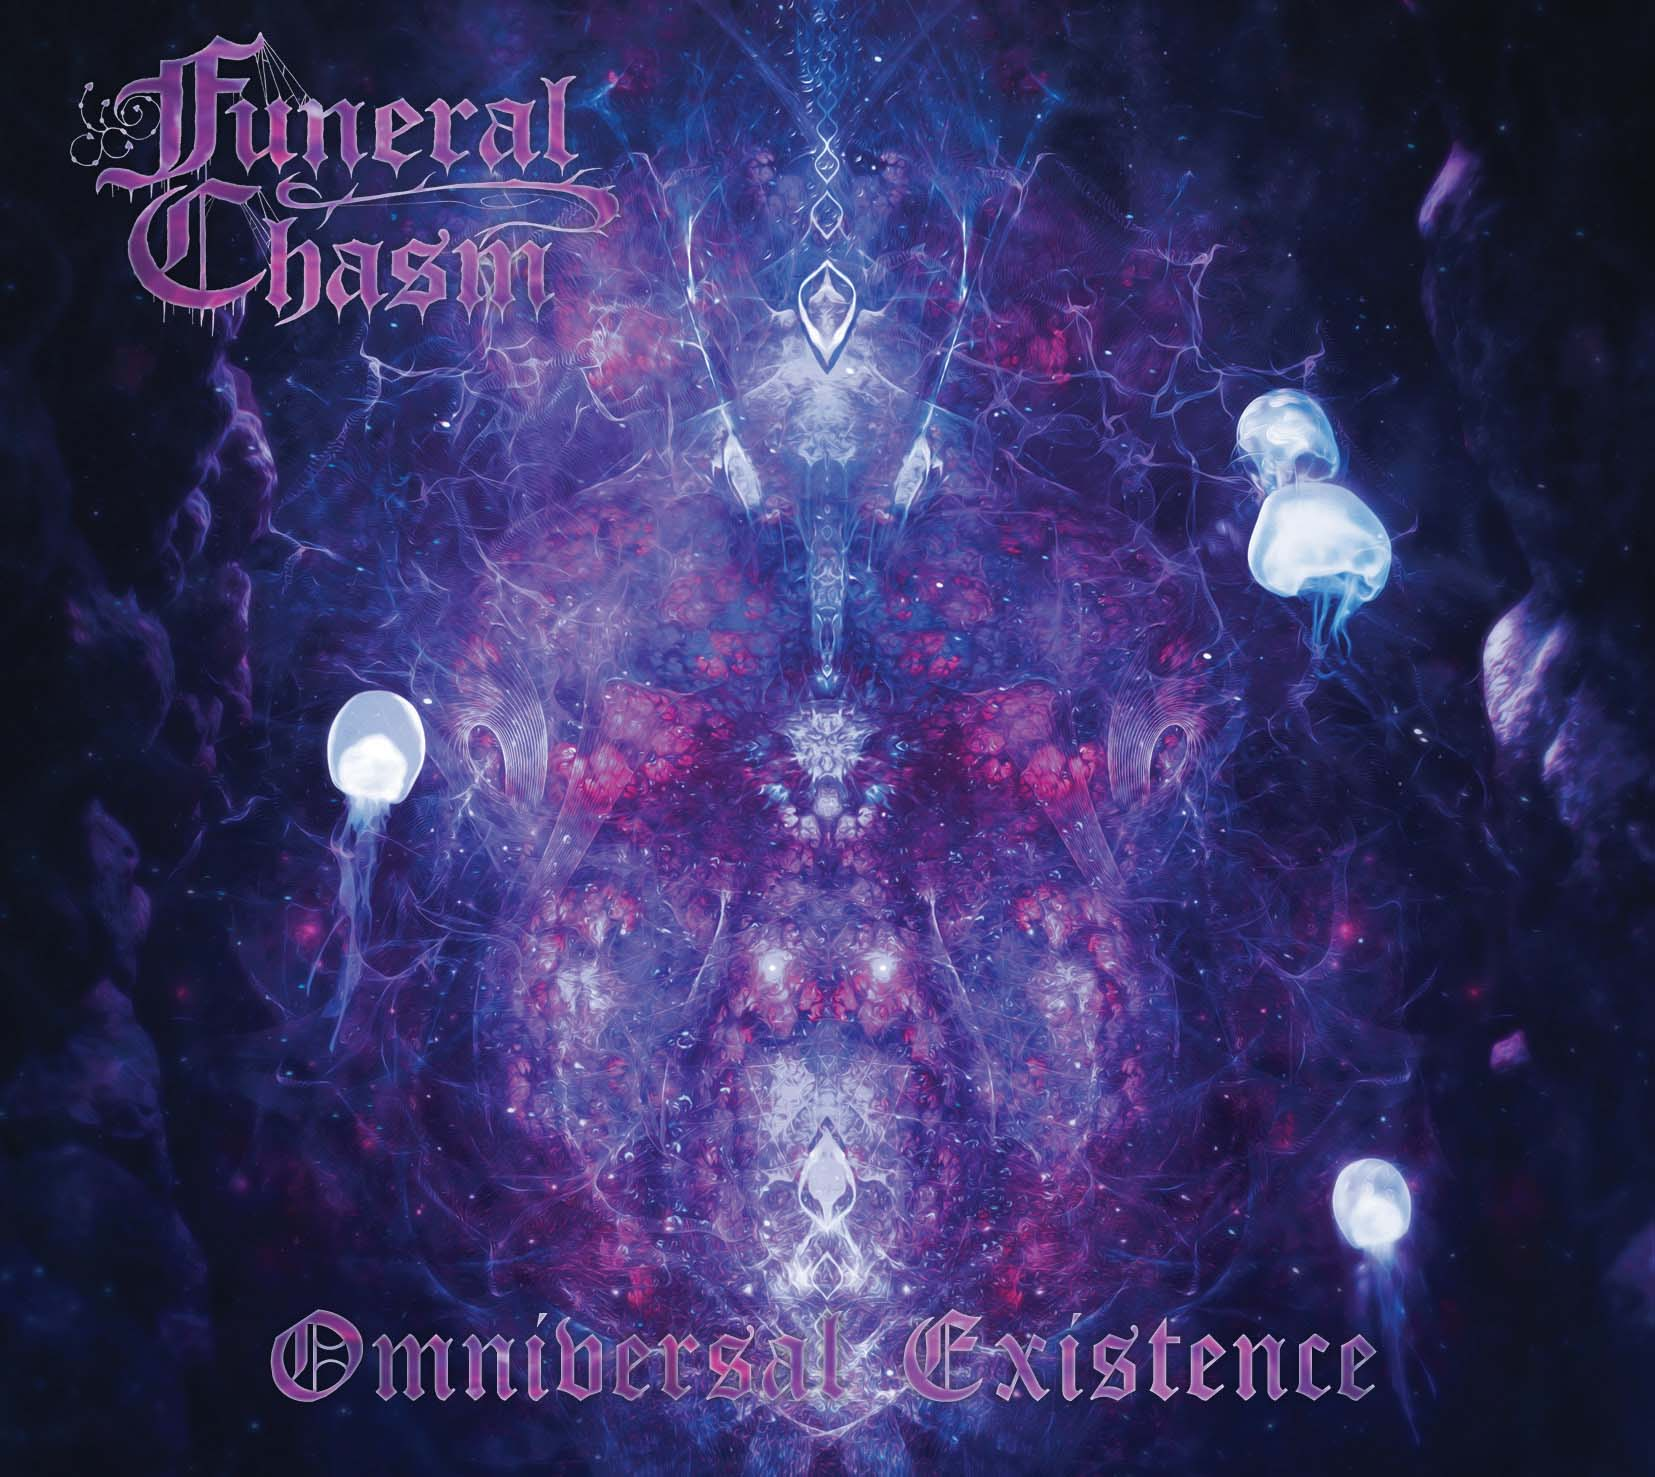 Funeral Chasm-Omniversal Existence